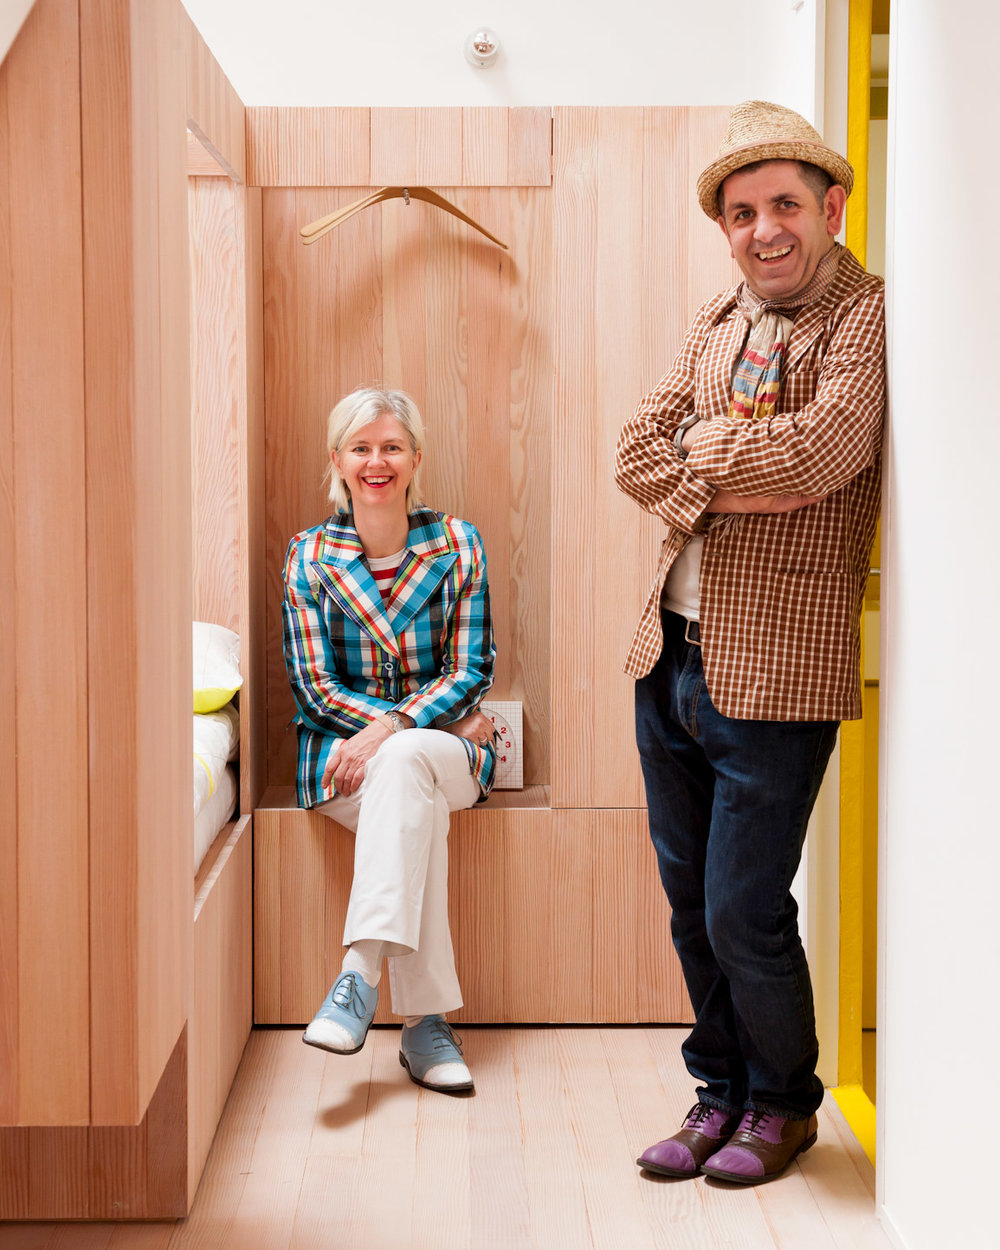 Designed By Studiomama - Danish designer Nina Tolstrup founded Studiomama in 2000 with husband and design collaborator Jack Mama. True to Nina's Scandinavian roots, simplicity and integrity are the trademarks of her work; a pared-down, contemporary but characterful aesthetic combined with a democratic belief in good design for all. A passionate belief in designing for the real world go a long way to explaining the timeless and unpretentious qualities of the studio's work. But whilst Studiomama's work can be simple, honest and minimal it is always playful, irreverent and humorous.